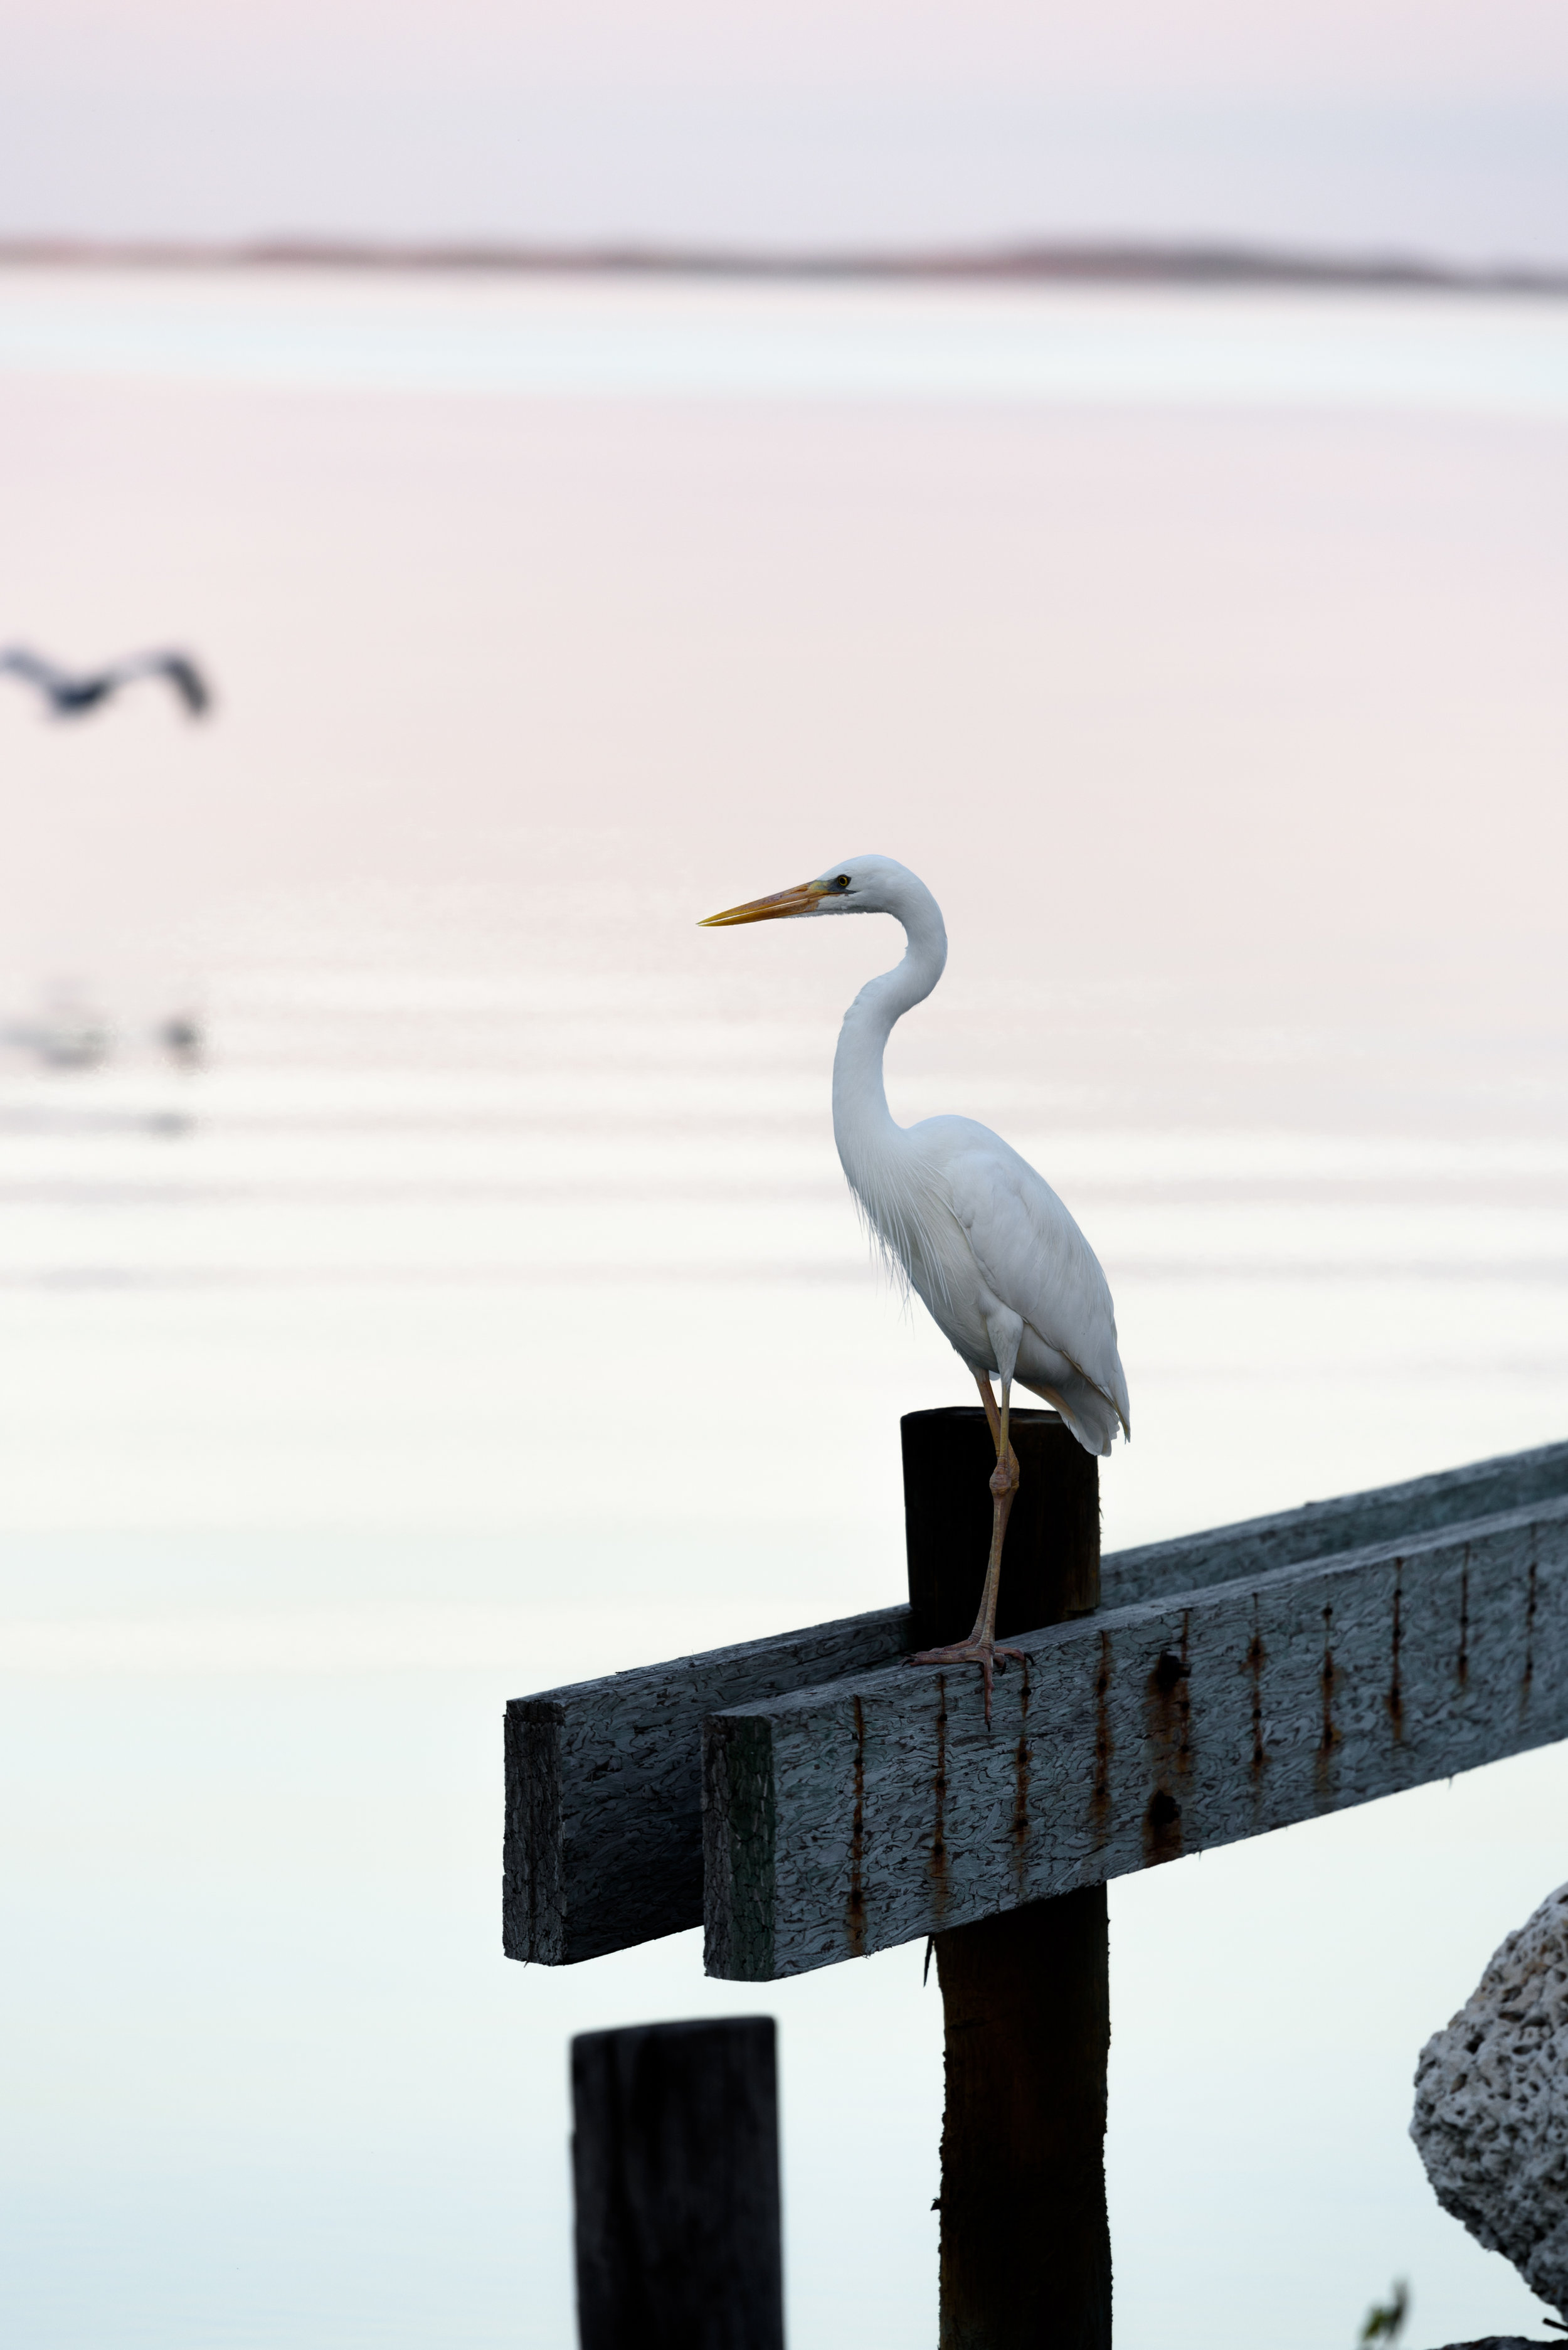 A Great White Heron poses for a close-up